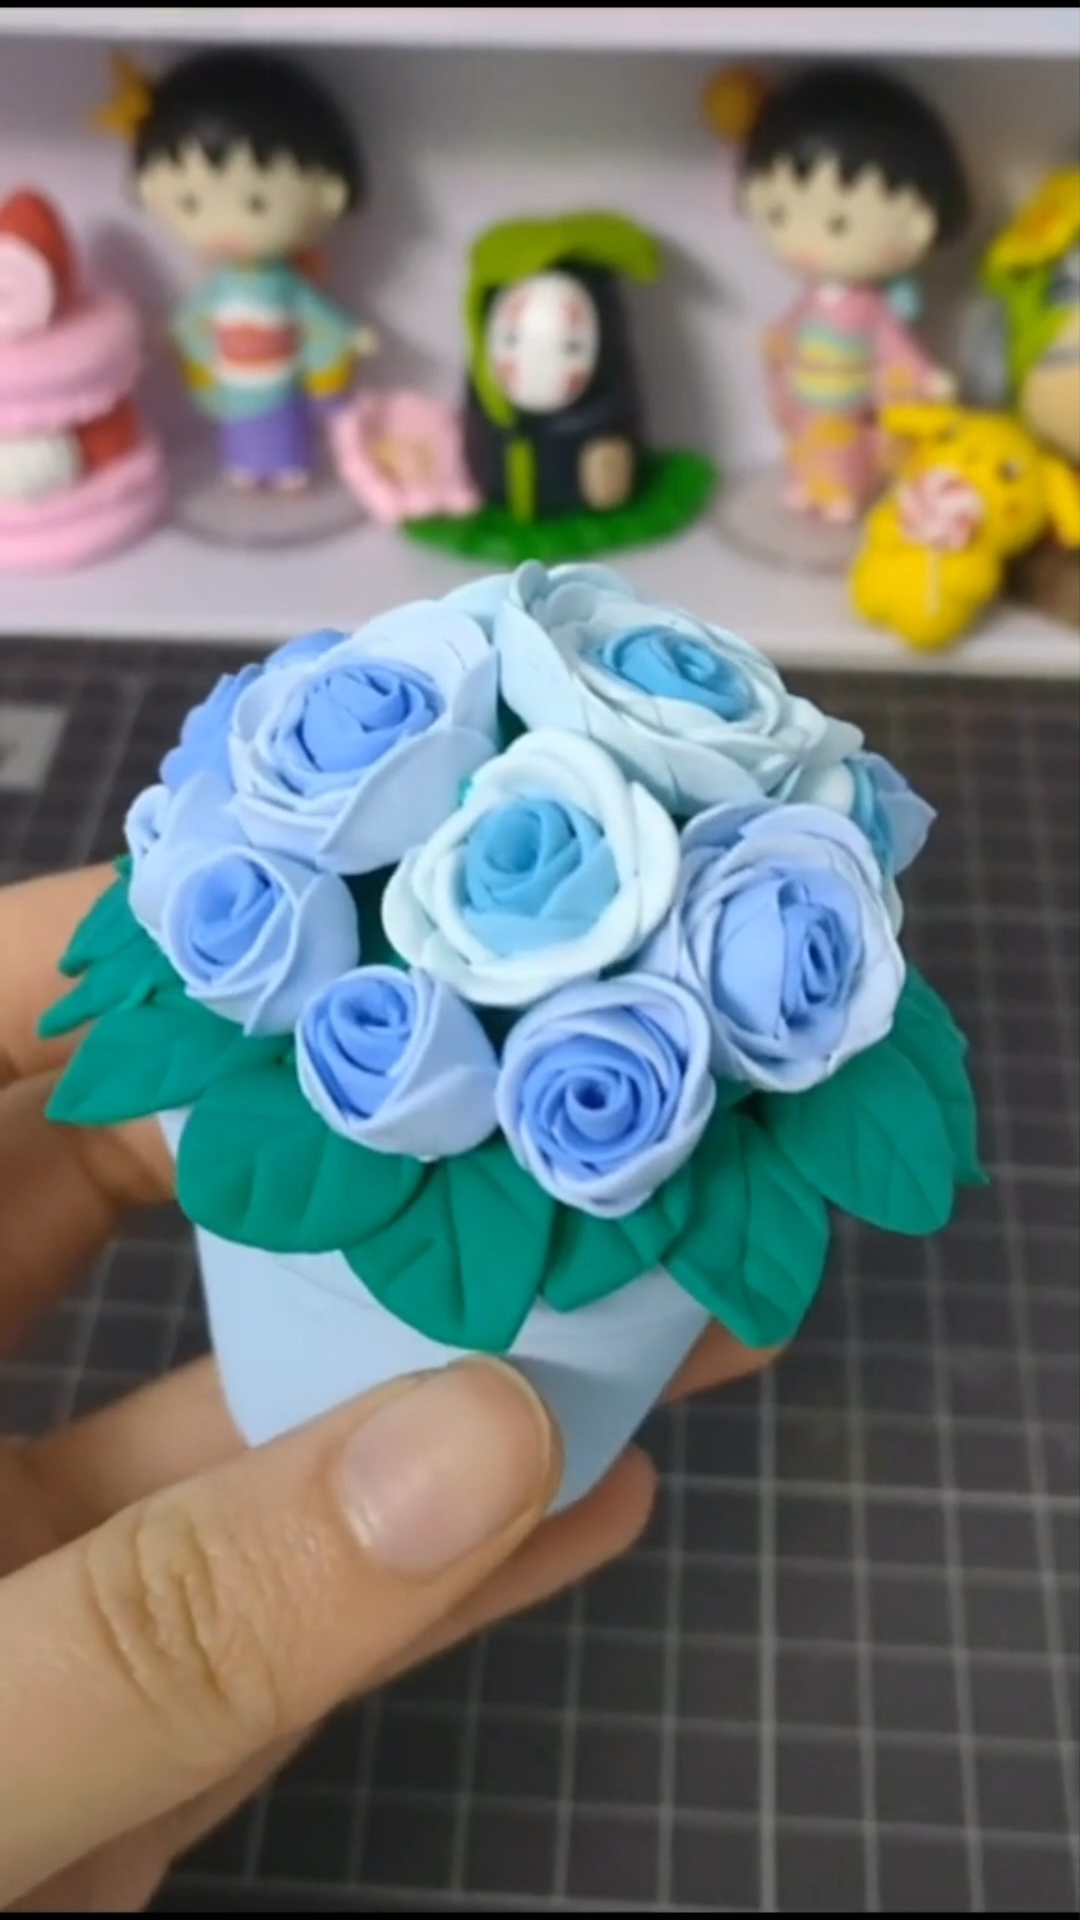 Diy Blue Rose By Clay Video Clay Crafts Polymer Clay Crafts Diy Clay Crafts